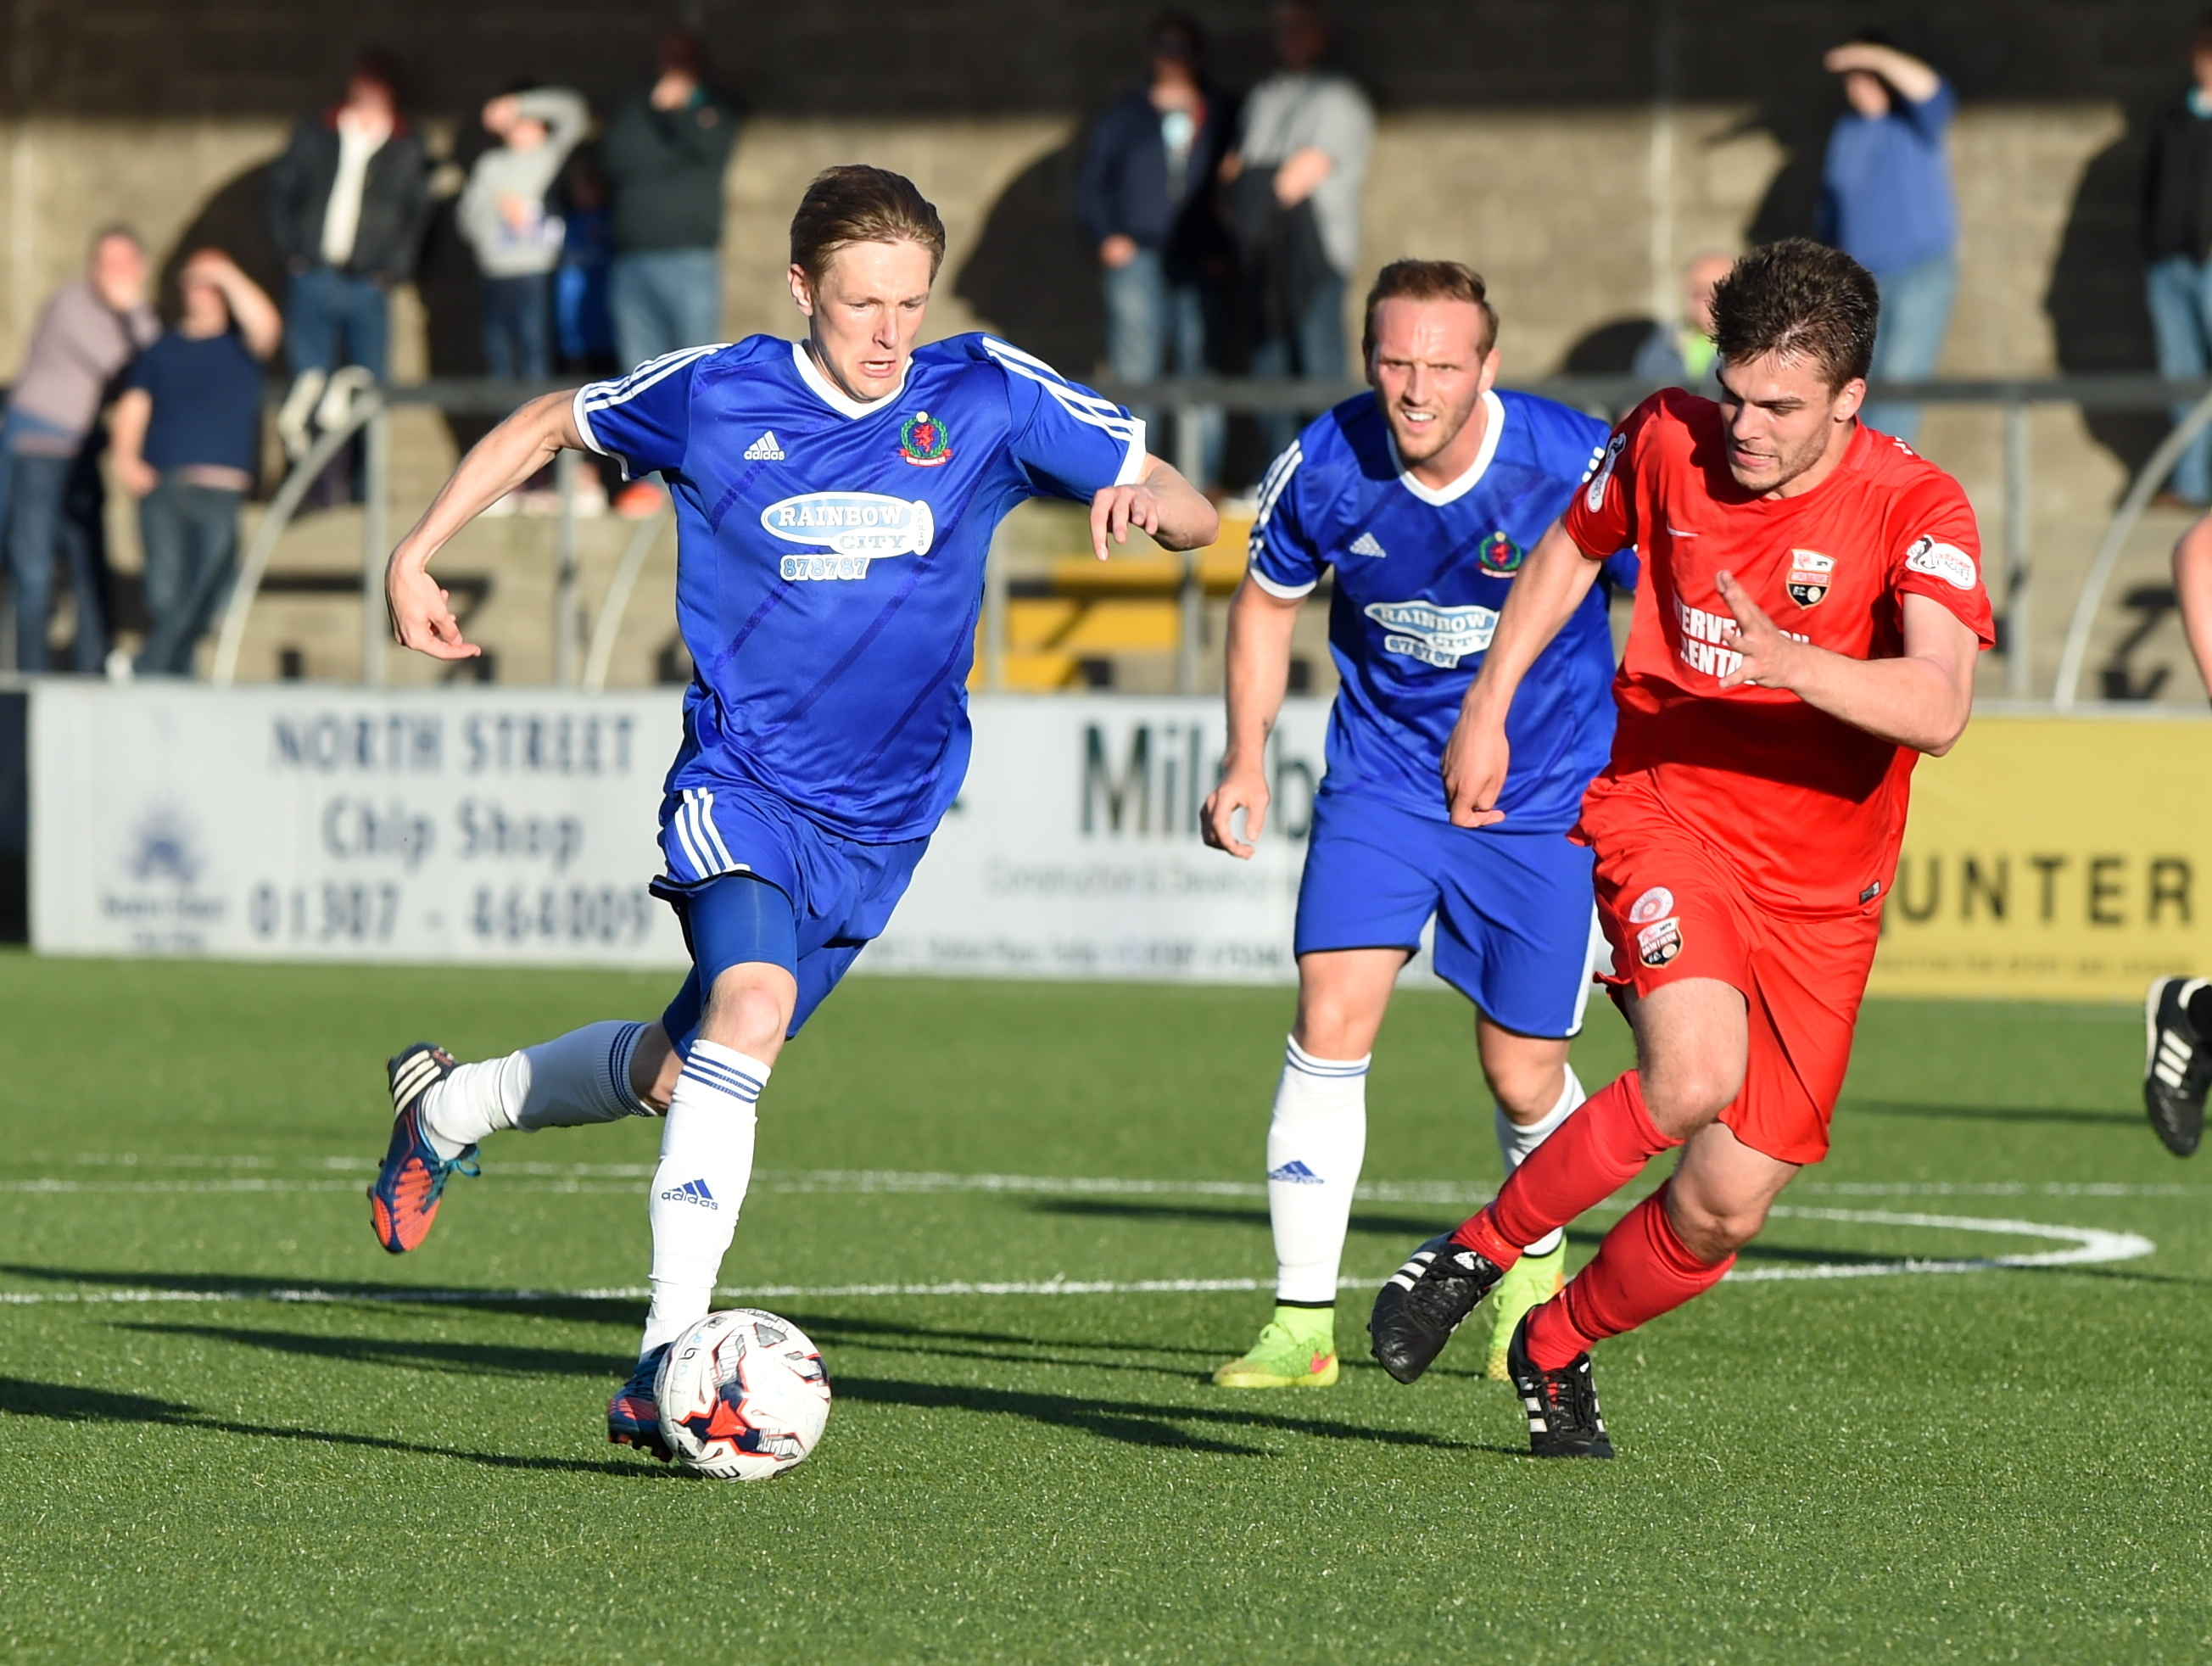 Midfielder Blair Yule is impressed with Cove's style of play.